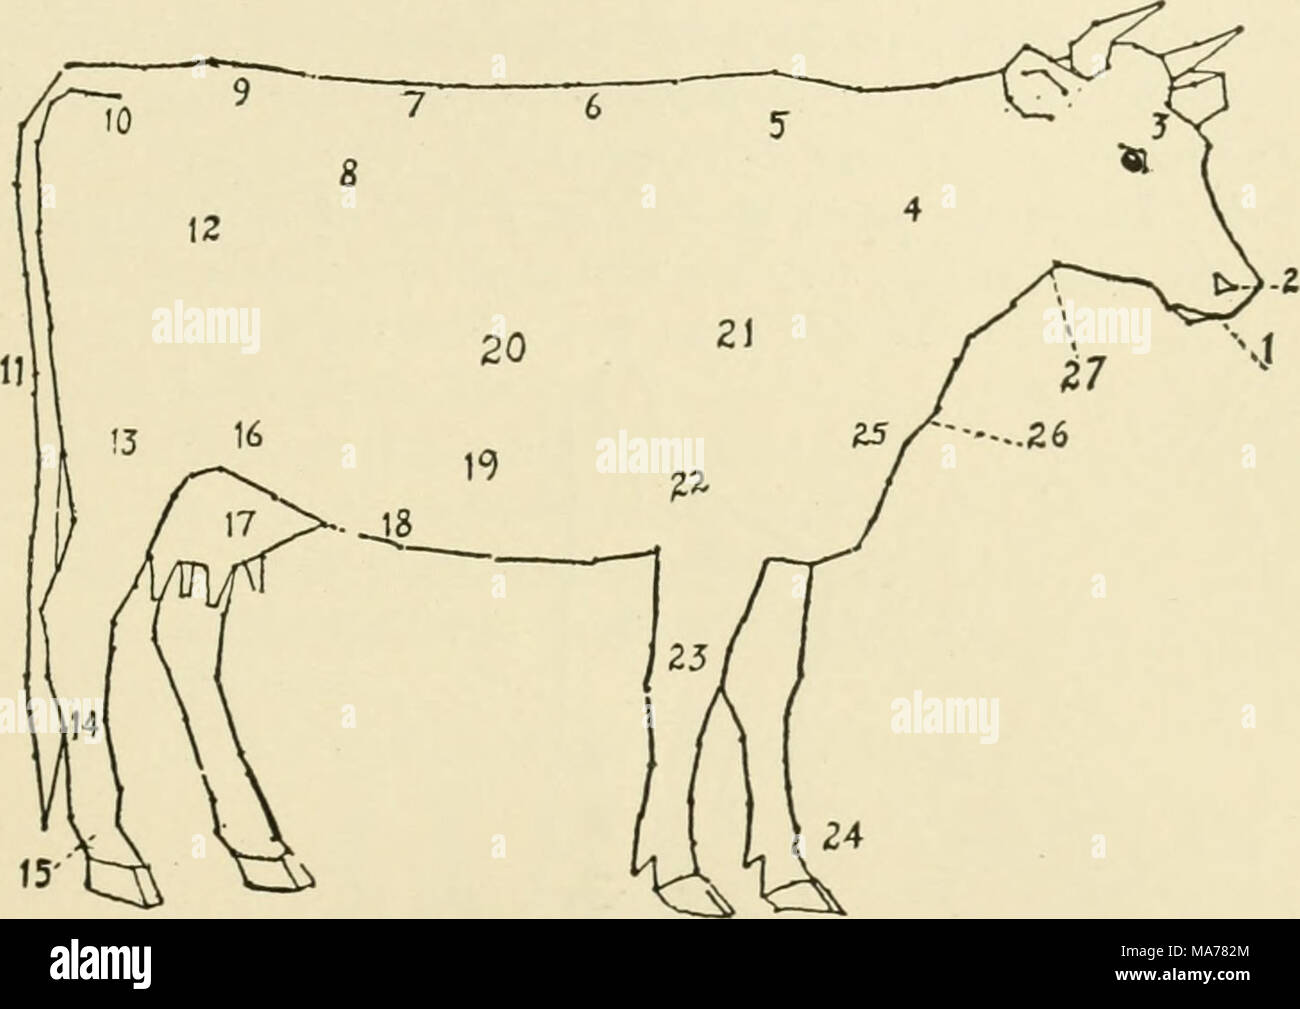 hight resolution of 121 diagram of a cow 1 muzzle 2